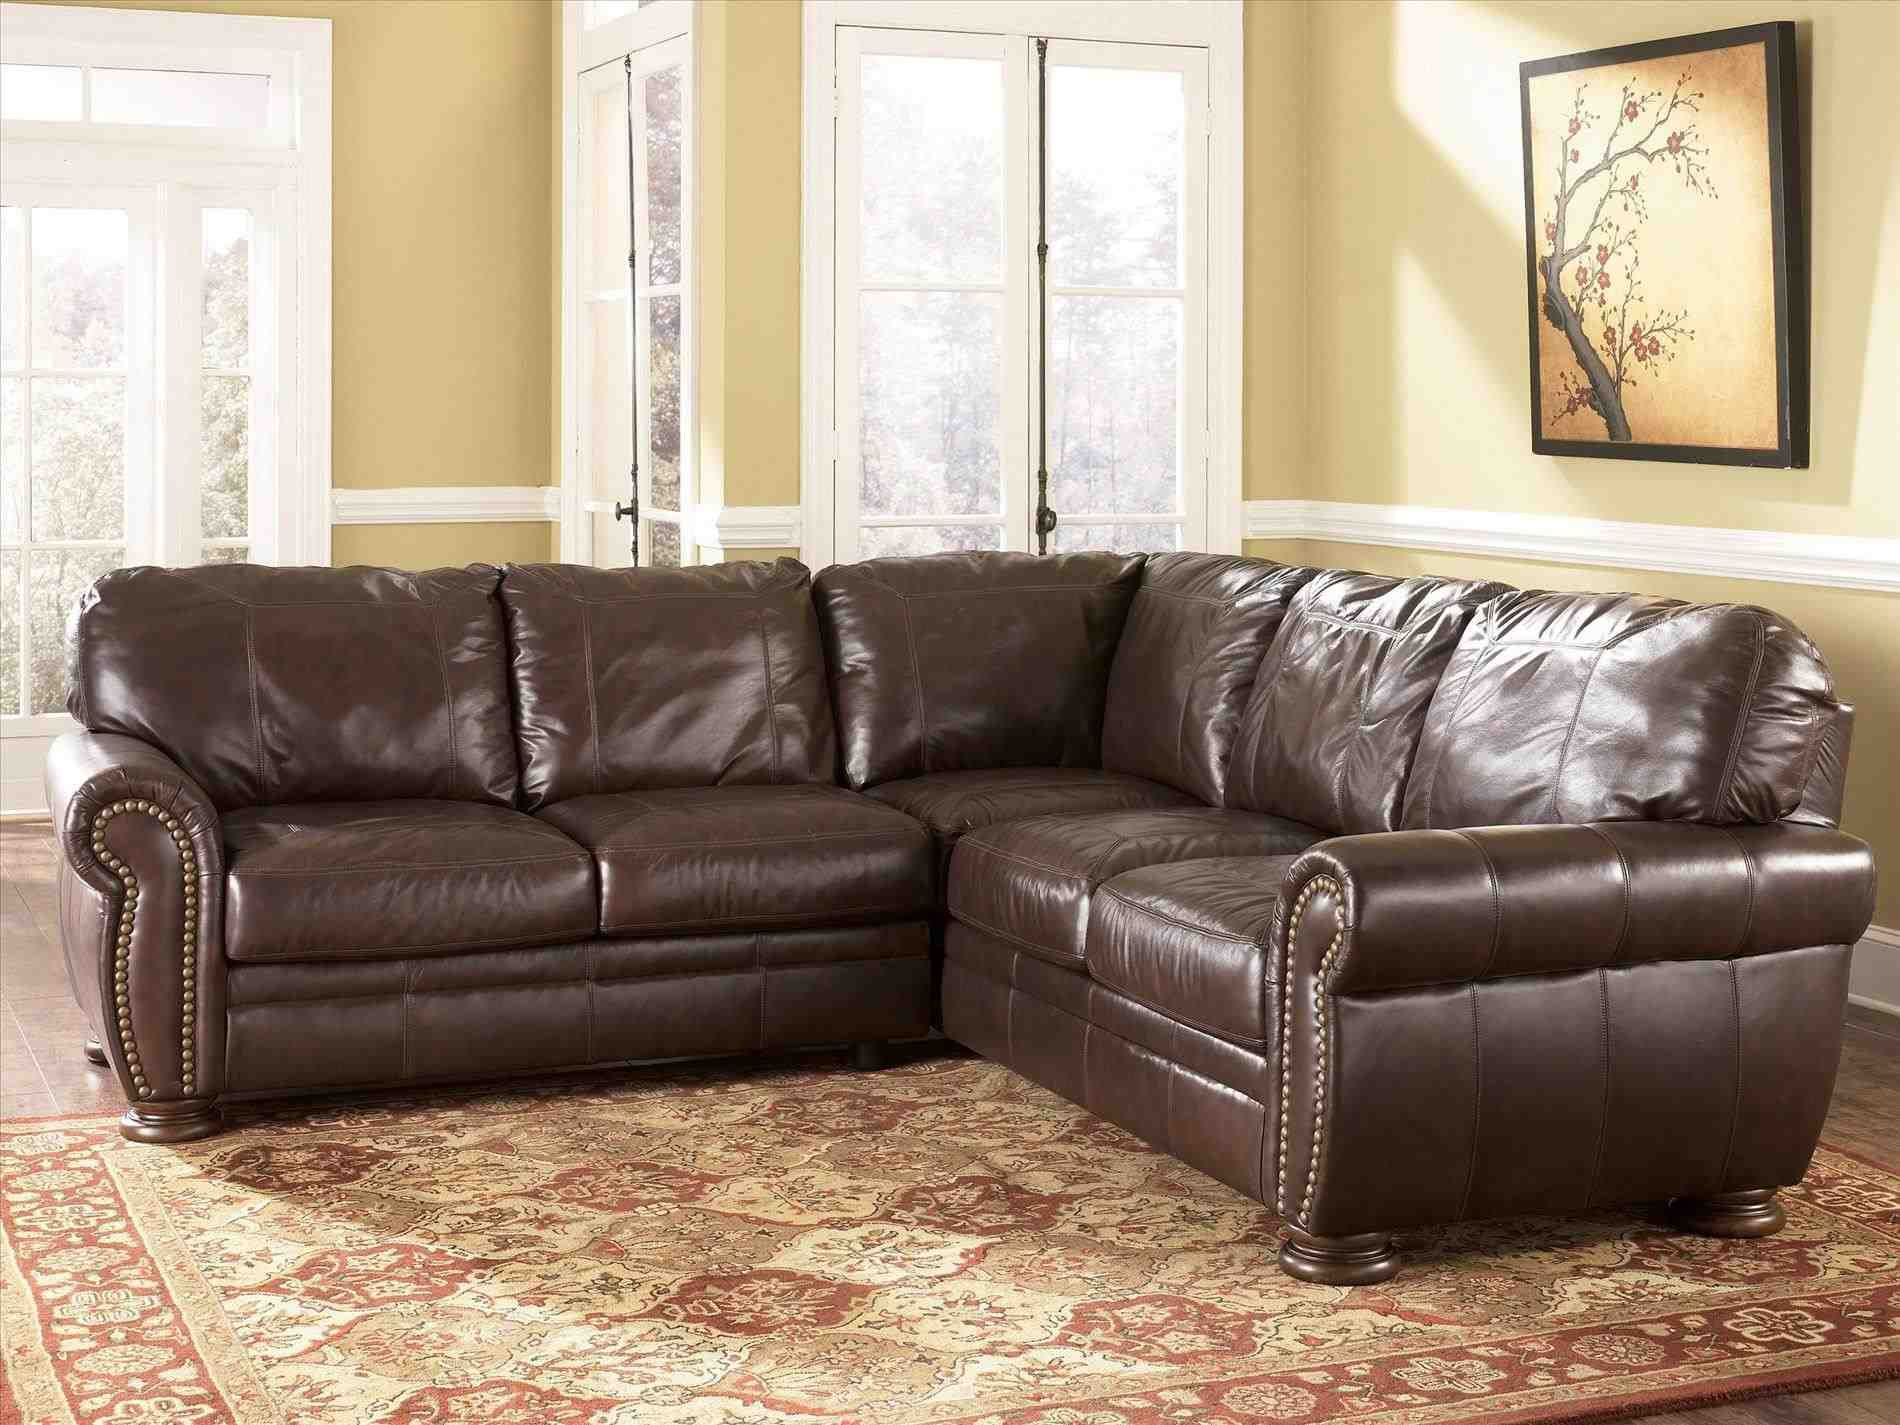 Sofa For Sale Online Cheap Sofa Gumtree Cheap Couches For Sale Online Furniture In